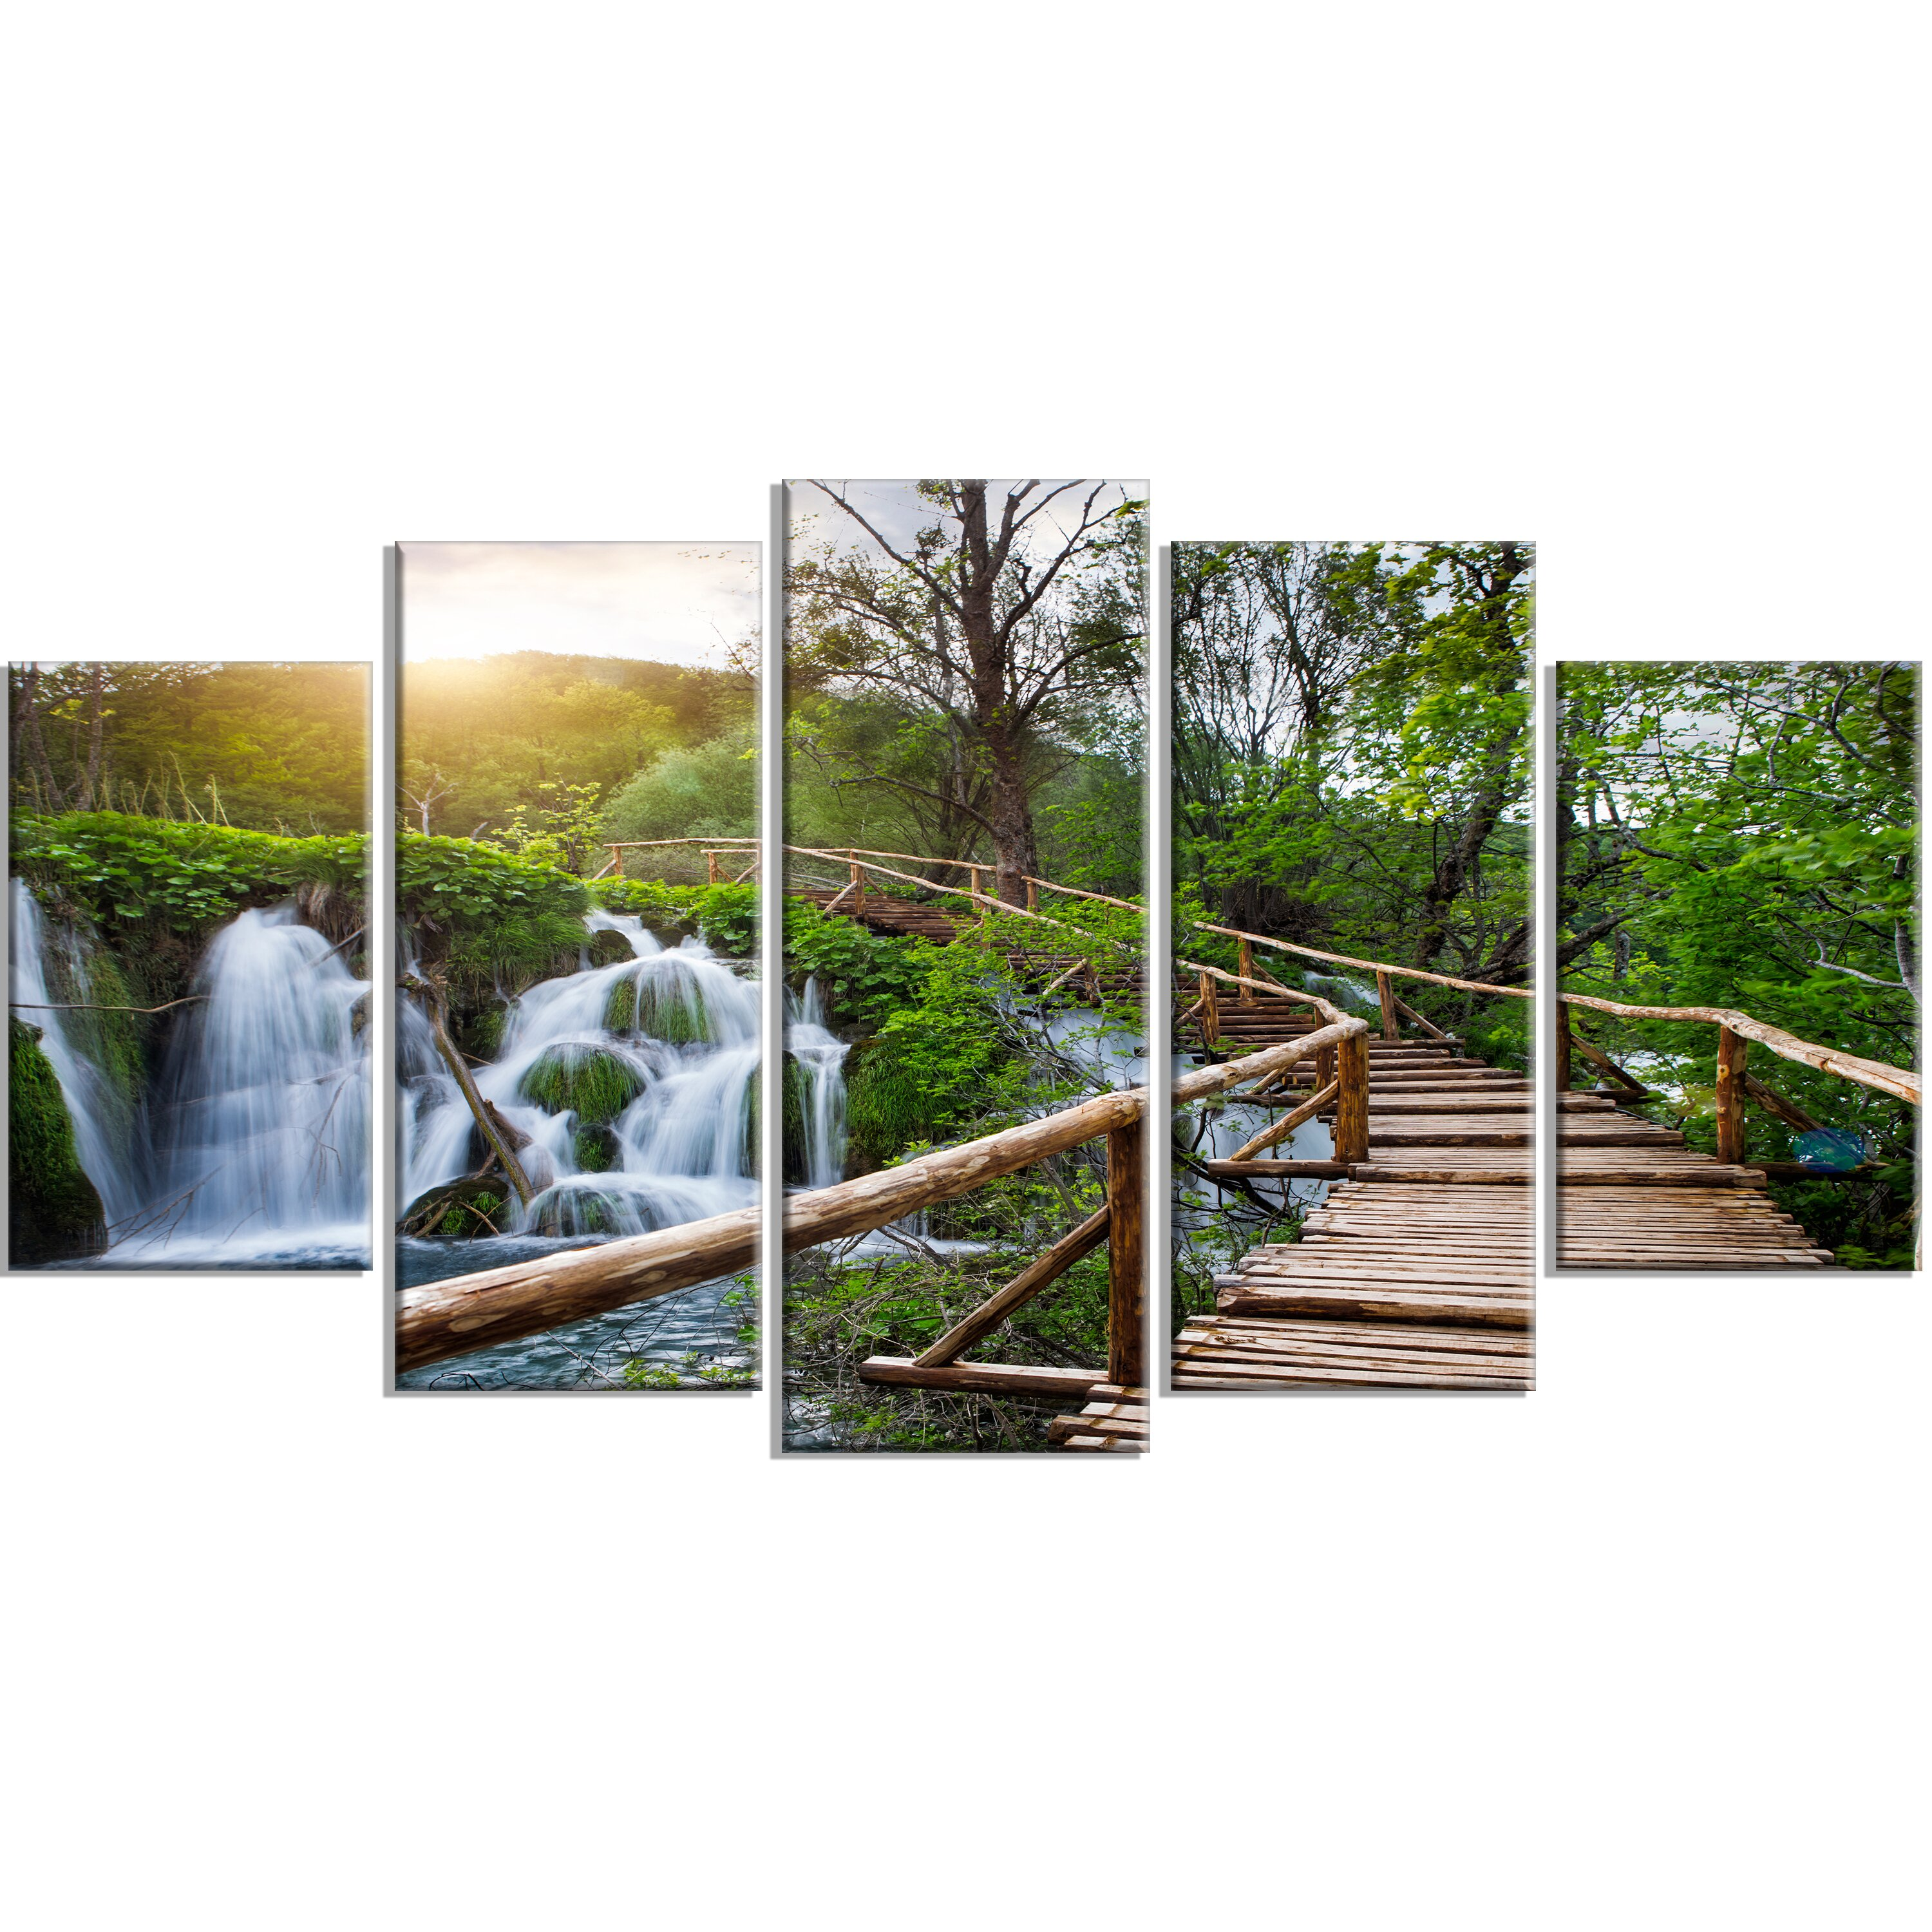 designart 39 pathway in plitvice lakes 39 5 piece wall art on wrapped canvas set wayfair. Black Bedroom Furniture Sets. Home Design Ideas